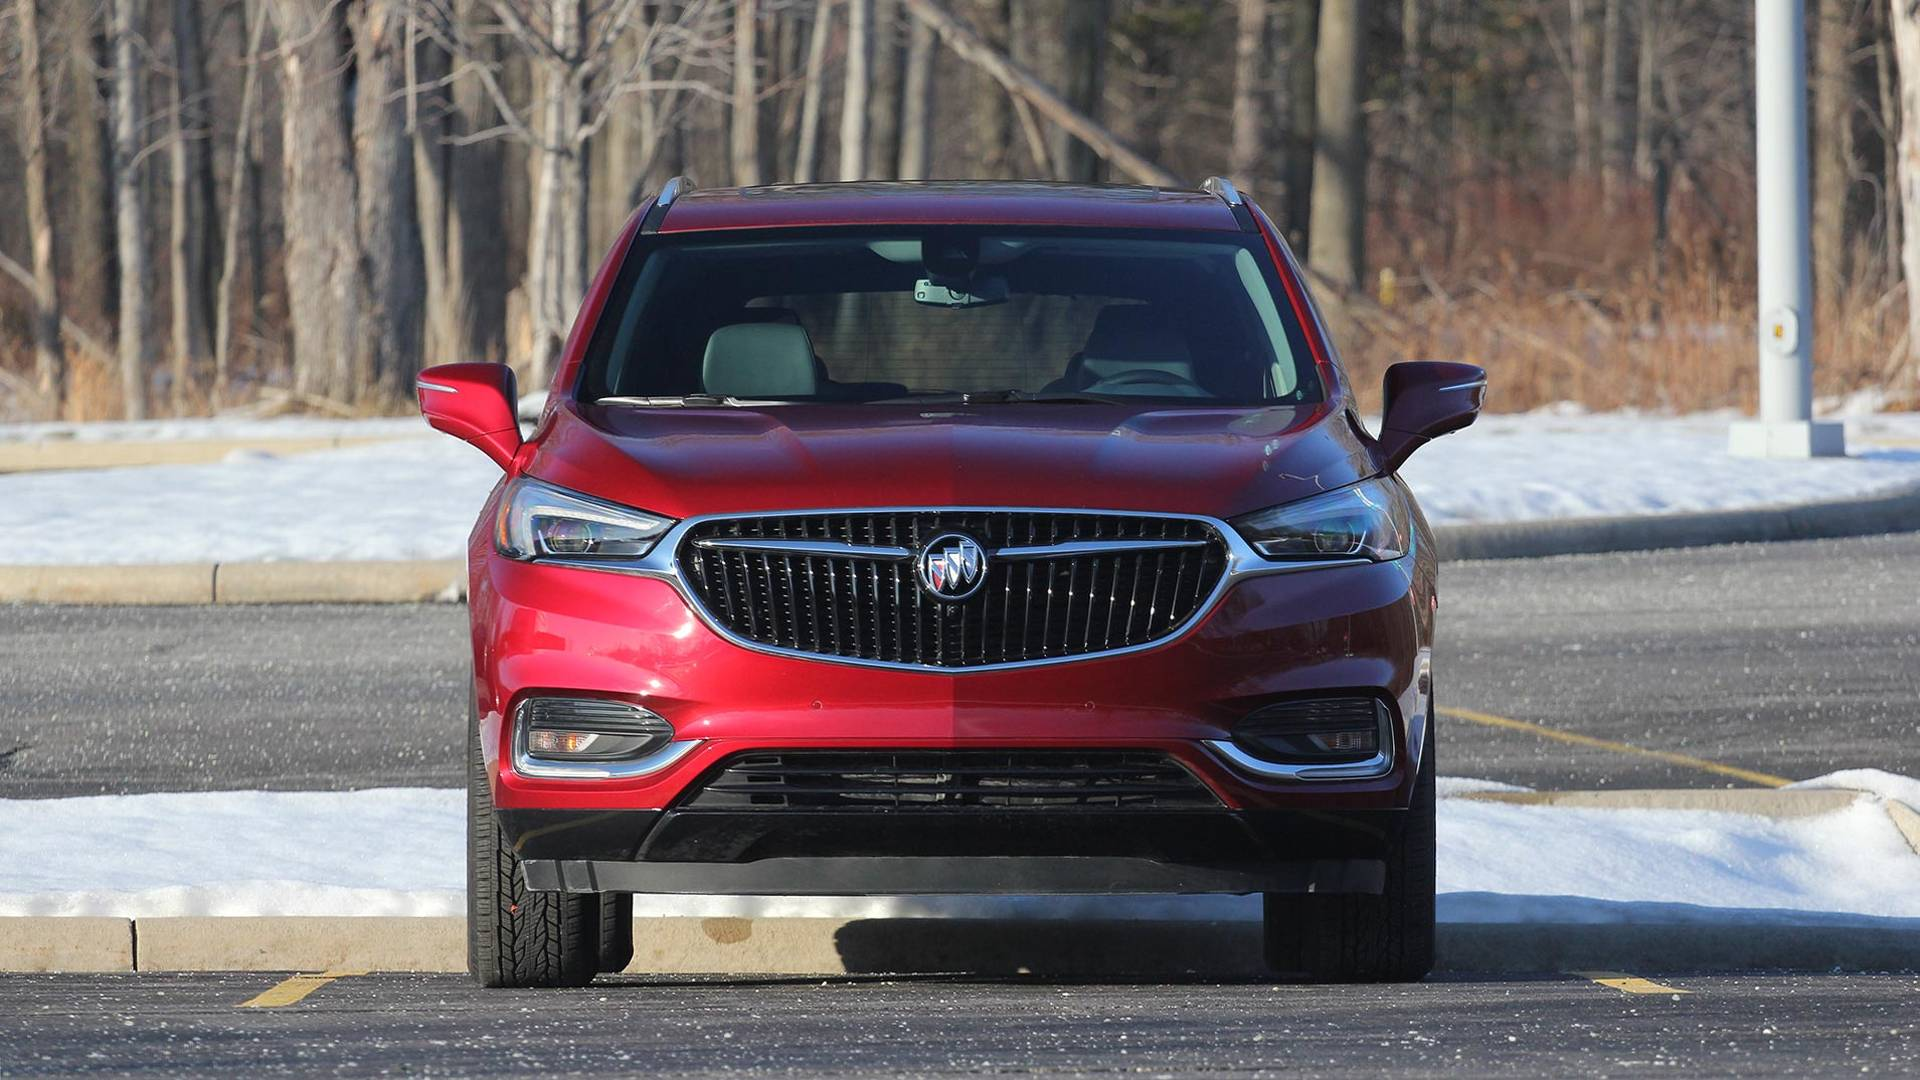 is expensive for starting suv enclave am buick review lineup not ah the with one more reviews s a cheapest premium it family whole actually price its in crossover of